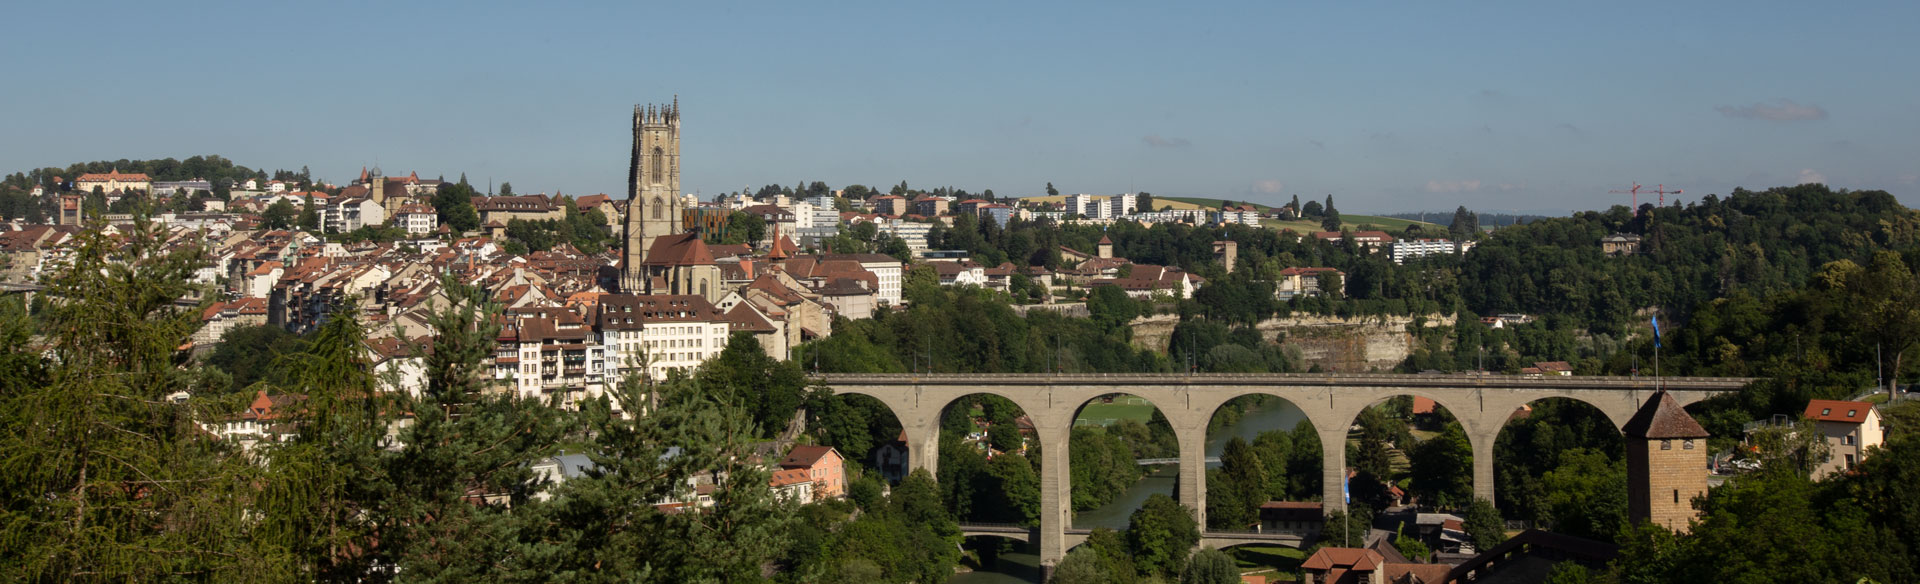 fribourg_ville_grand_fribourg_ete_2018_mg_0993.jpg